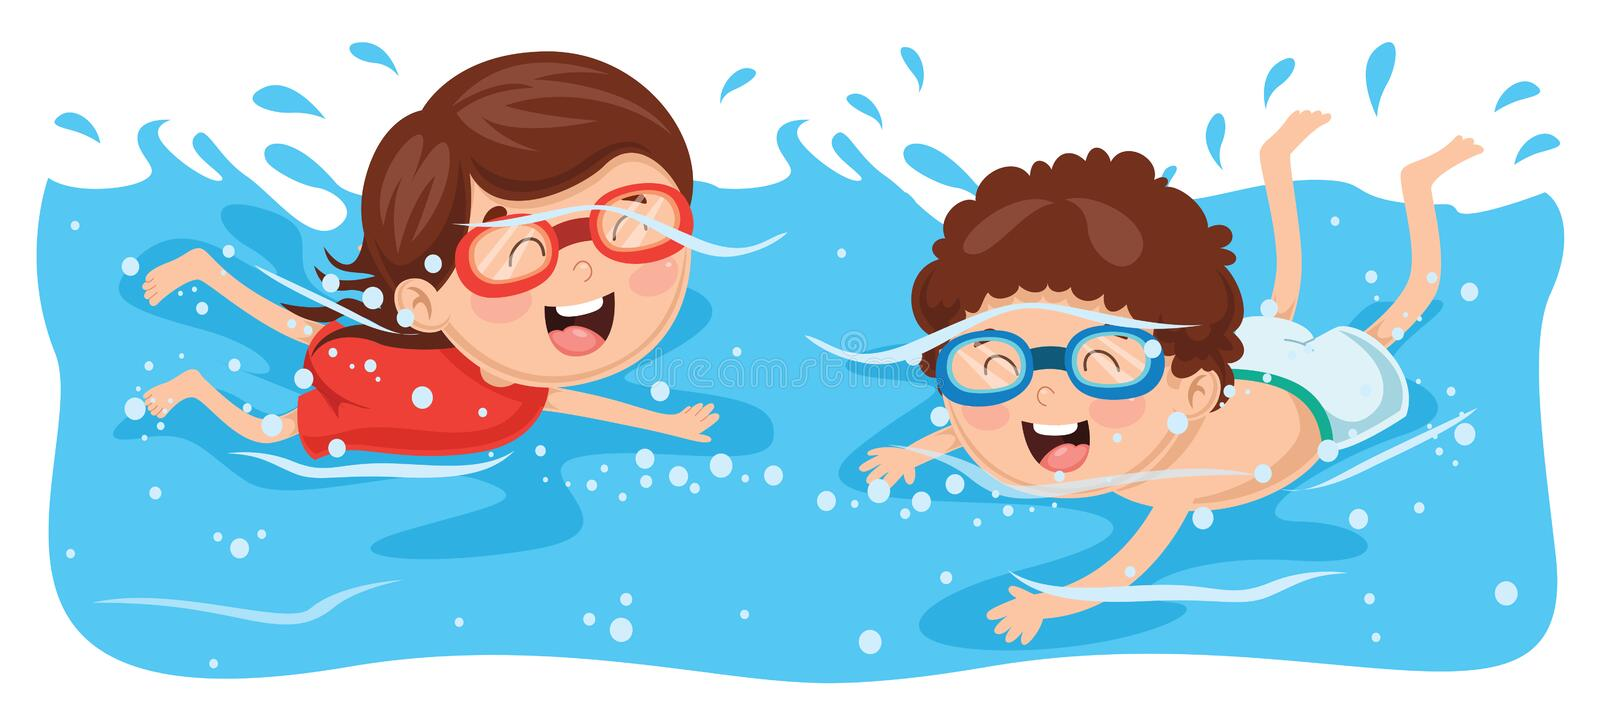 vector illustration of kid swimming stock illustration rh dreamstime com Competitive Swimming Clip Art Swimming Silhouette